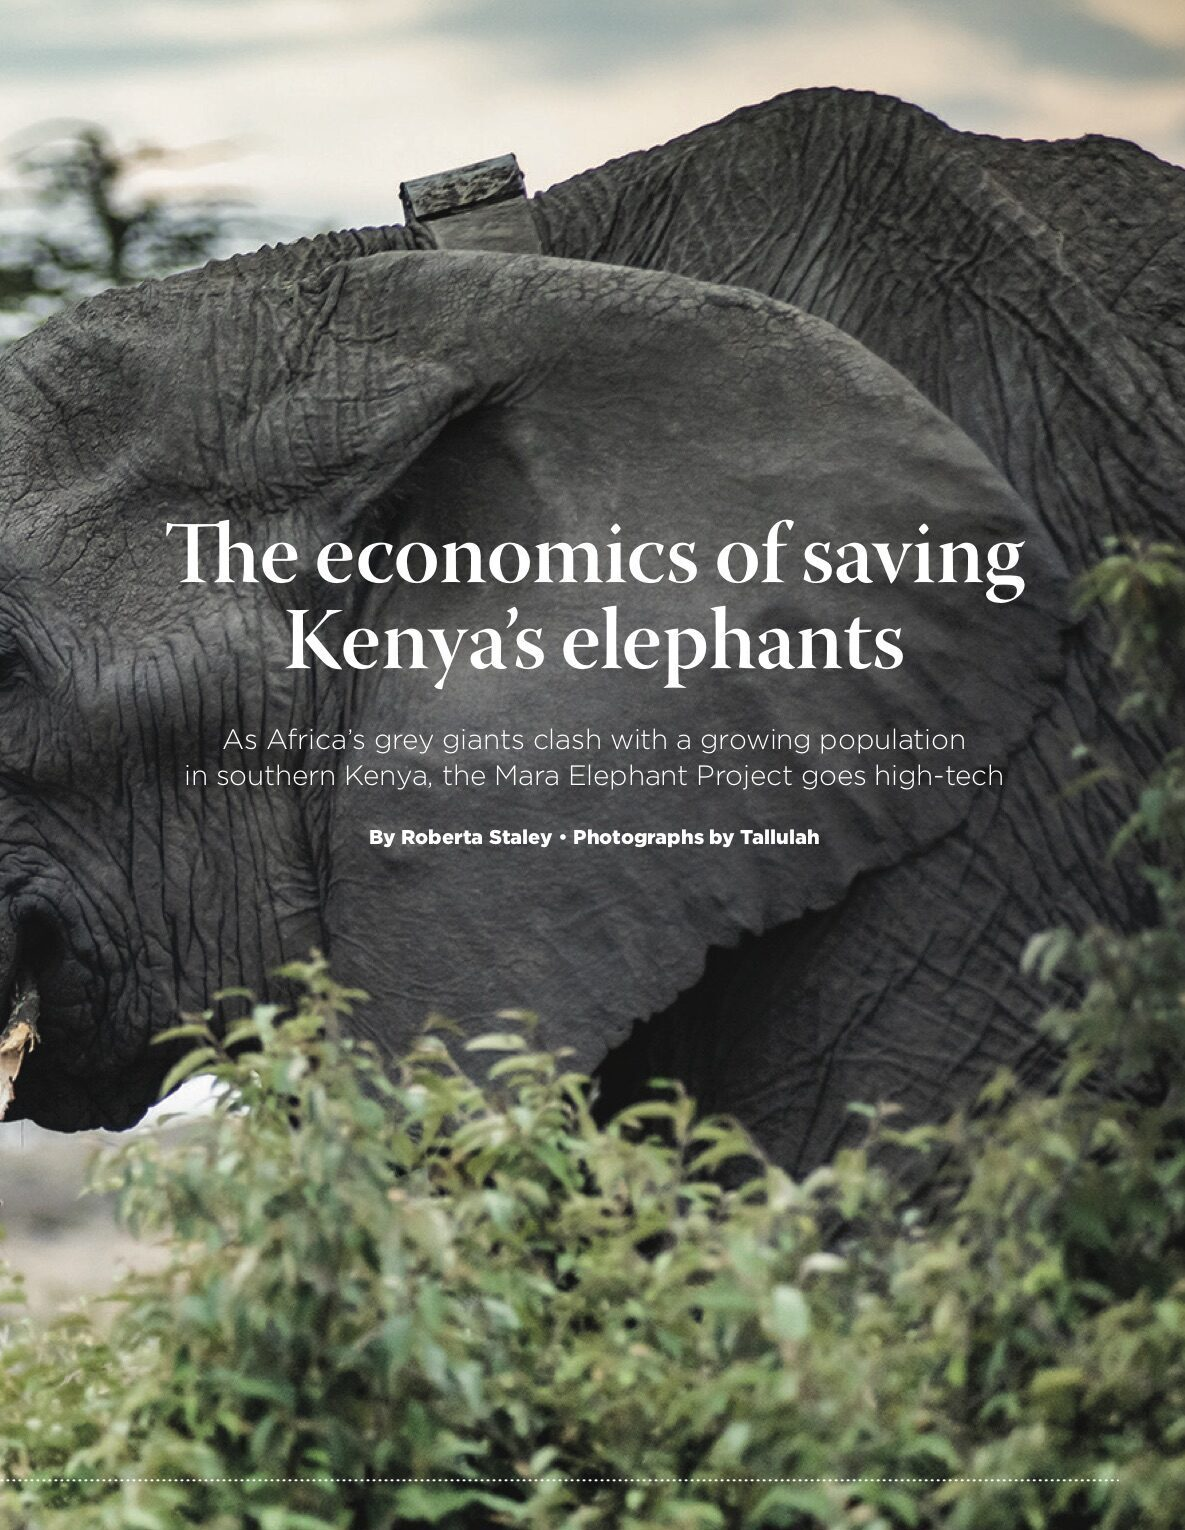 The cost of Saving an Elephant